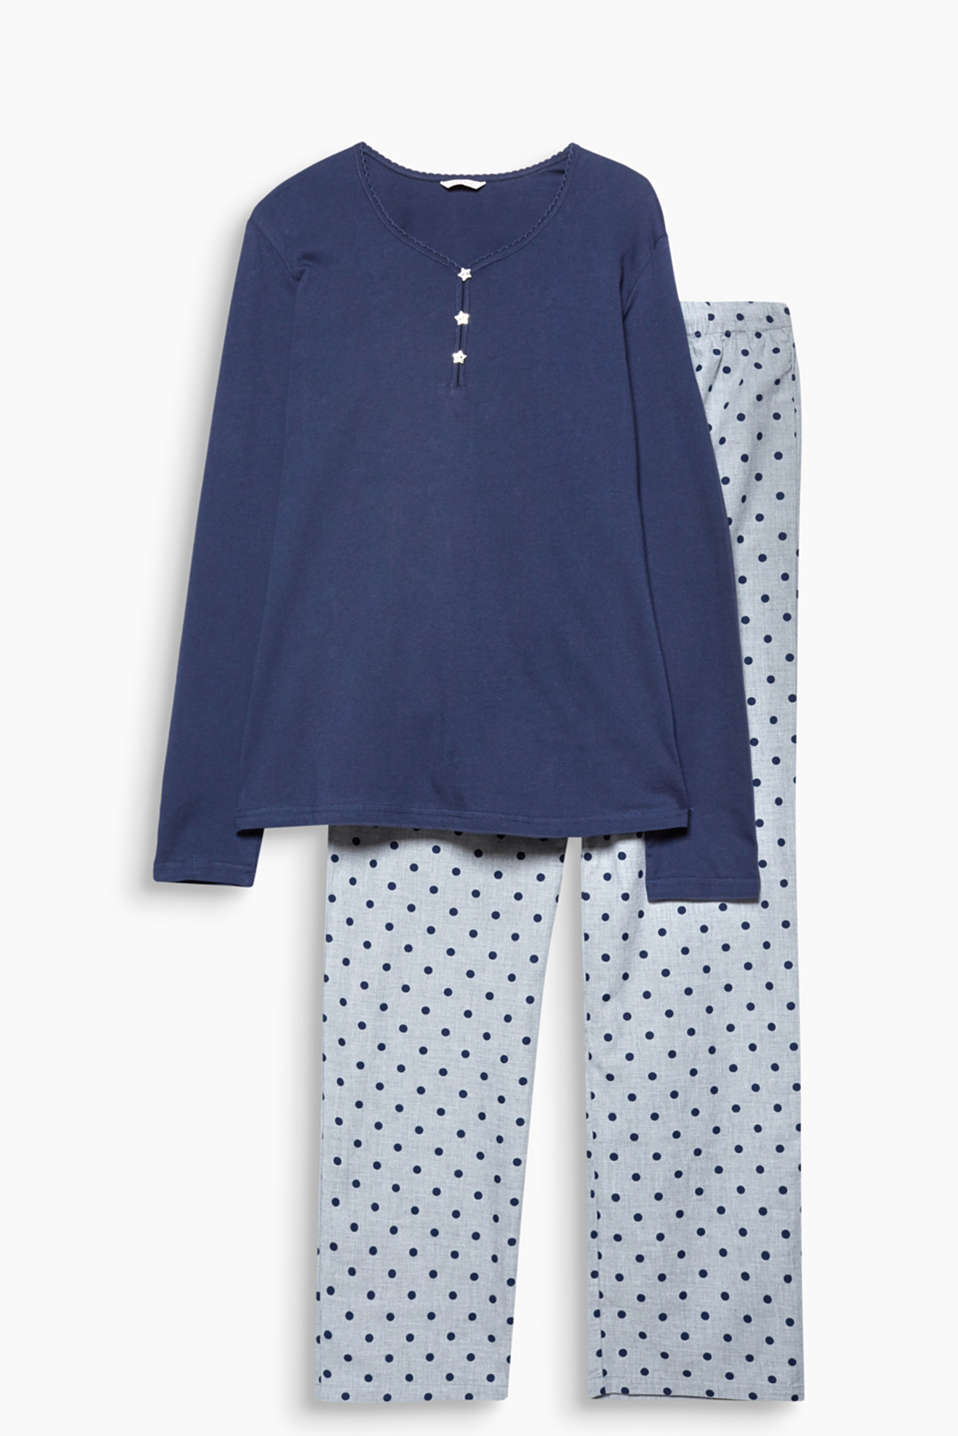 Retro polka dots are equally beguiling by night: pyjamas consisting of a plain long sleeve top and patterned bottoms